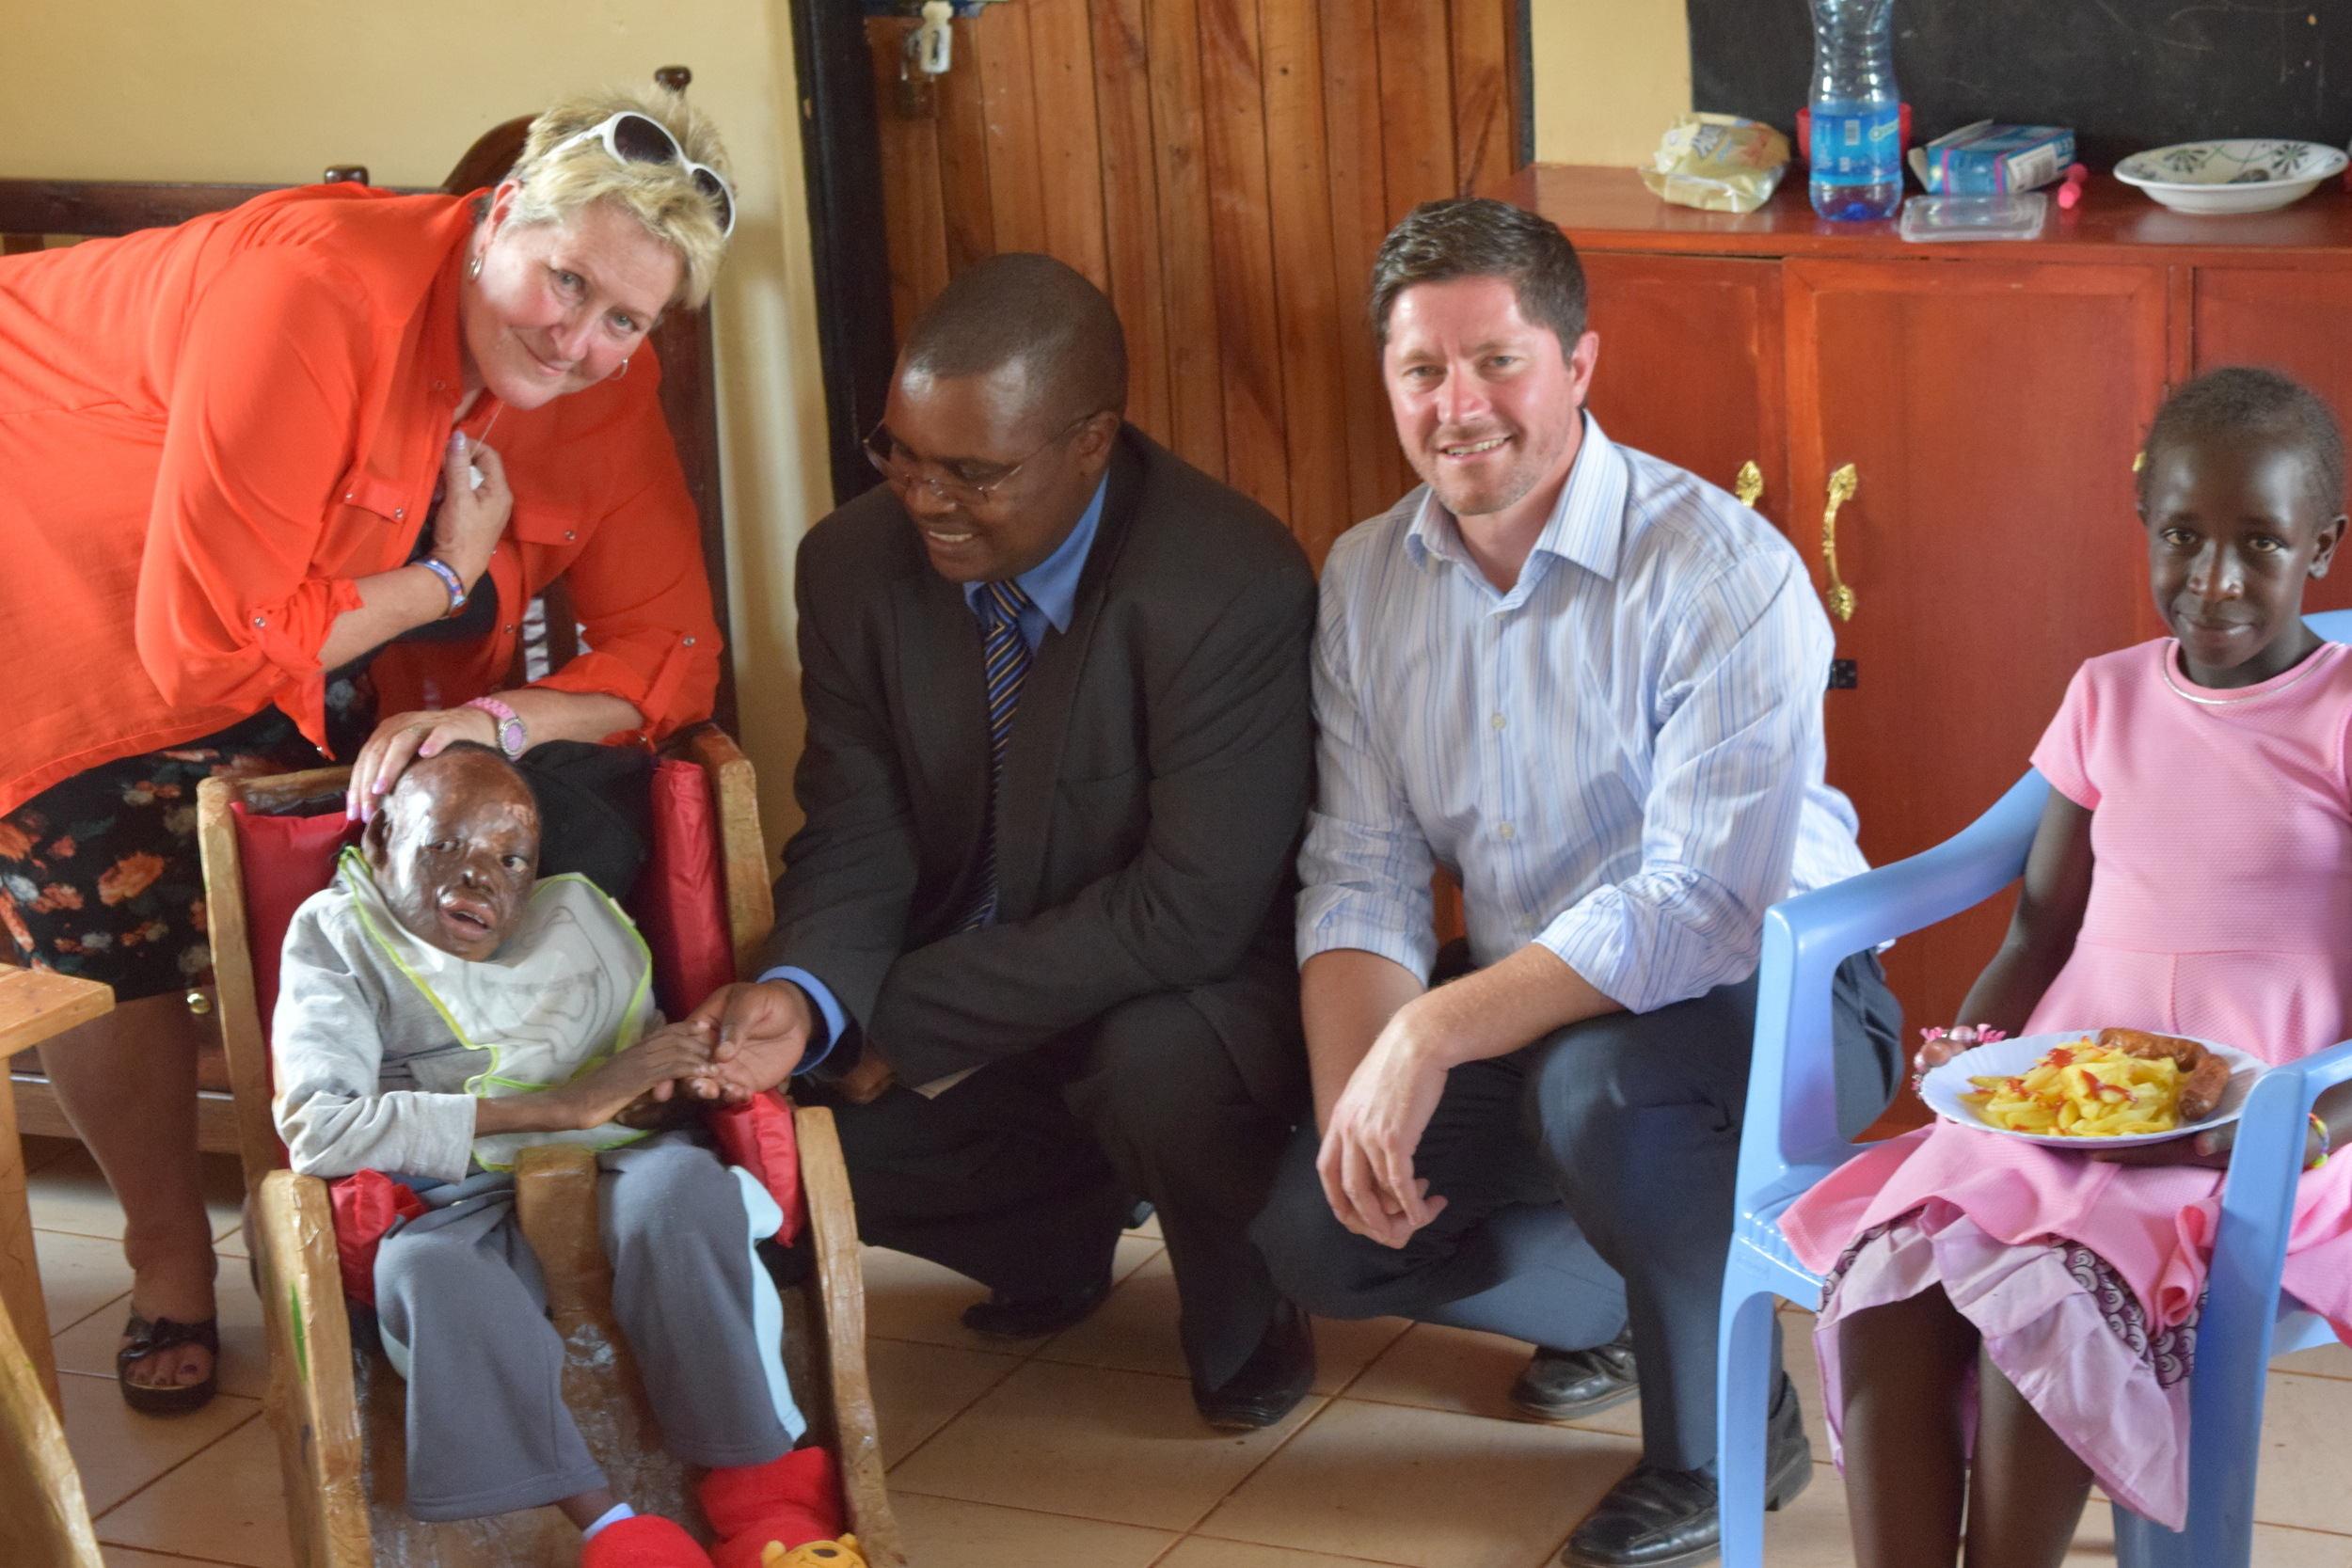 The Hon. David Mwangi Mugo (centre), the Speaker of the County Assembly of Nyeri, with Mrs Terry Fairfowl (left) and Pastor David Murray (right), meets Kenuah (front left) and Fiona (front right) in our Sanctuary day care centre.